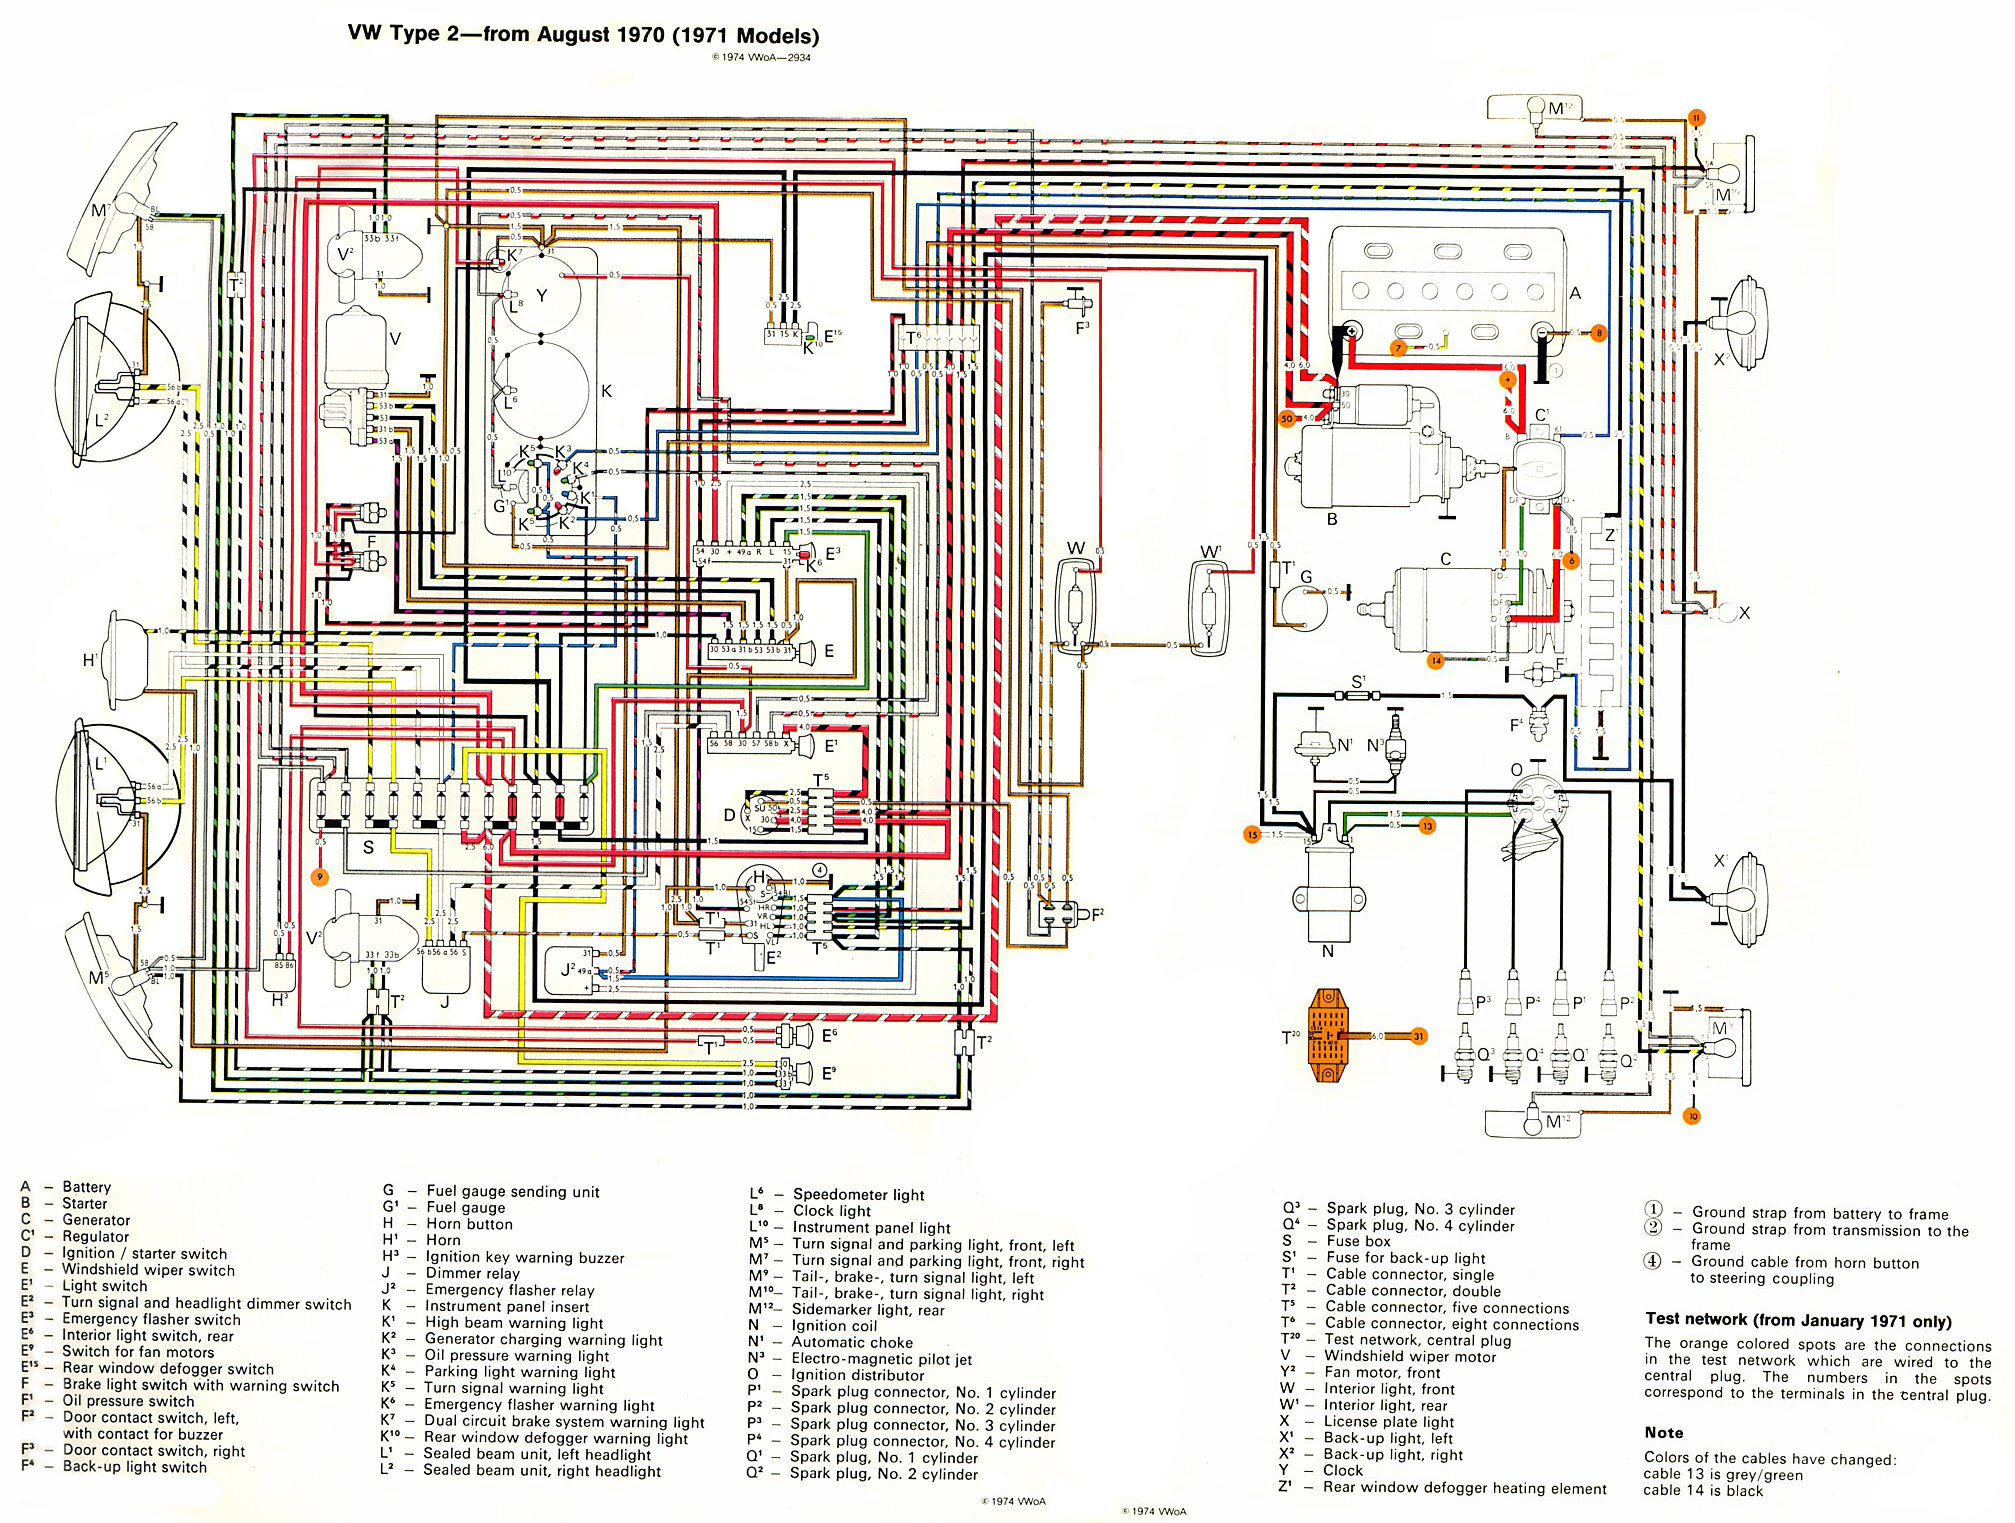 baybus_71_fixed thesamba com type 2 wiring diagrams Spark Plug Wiring Diagram at gsmx.co